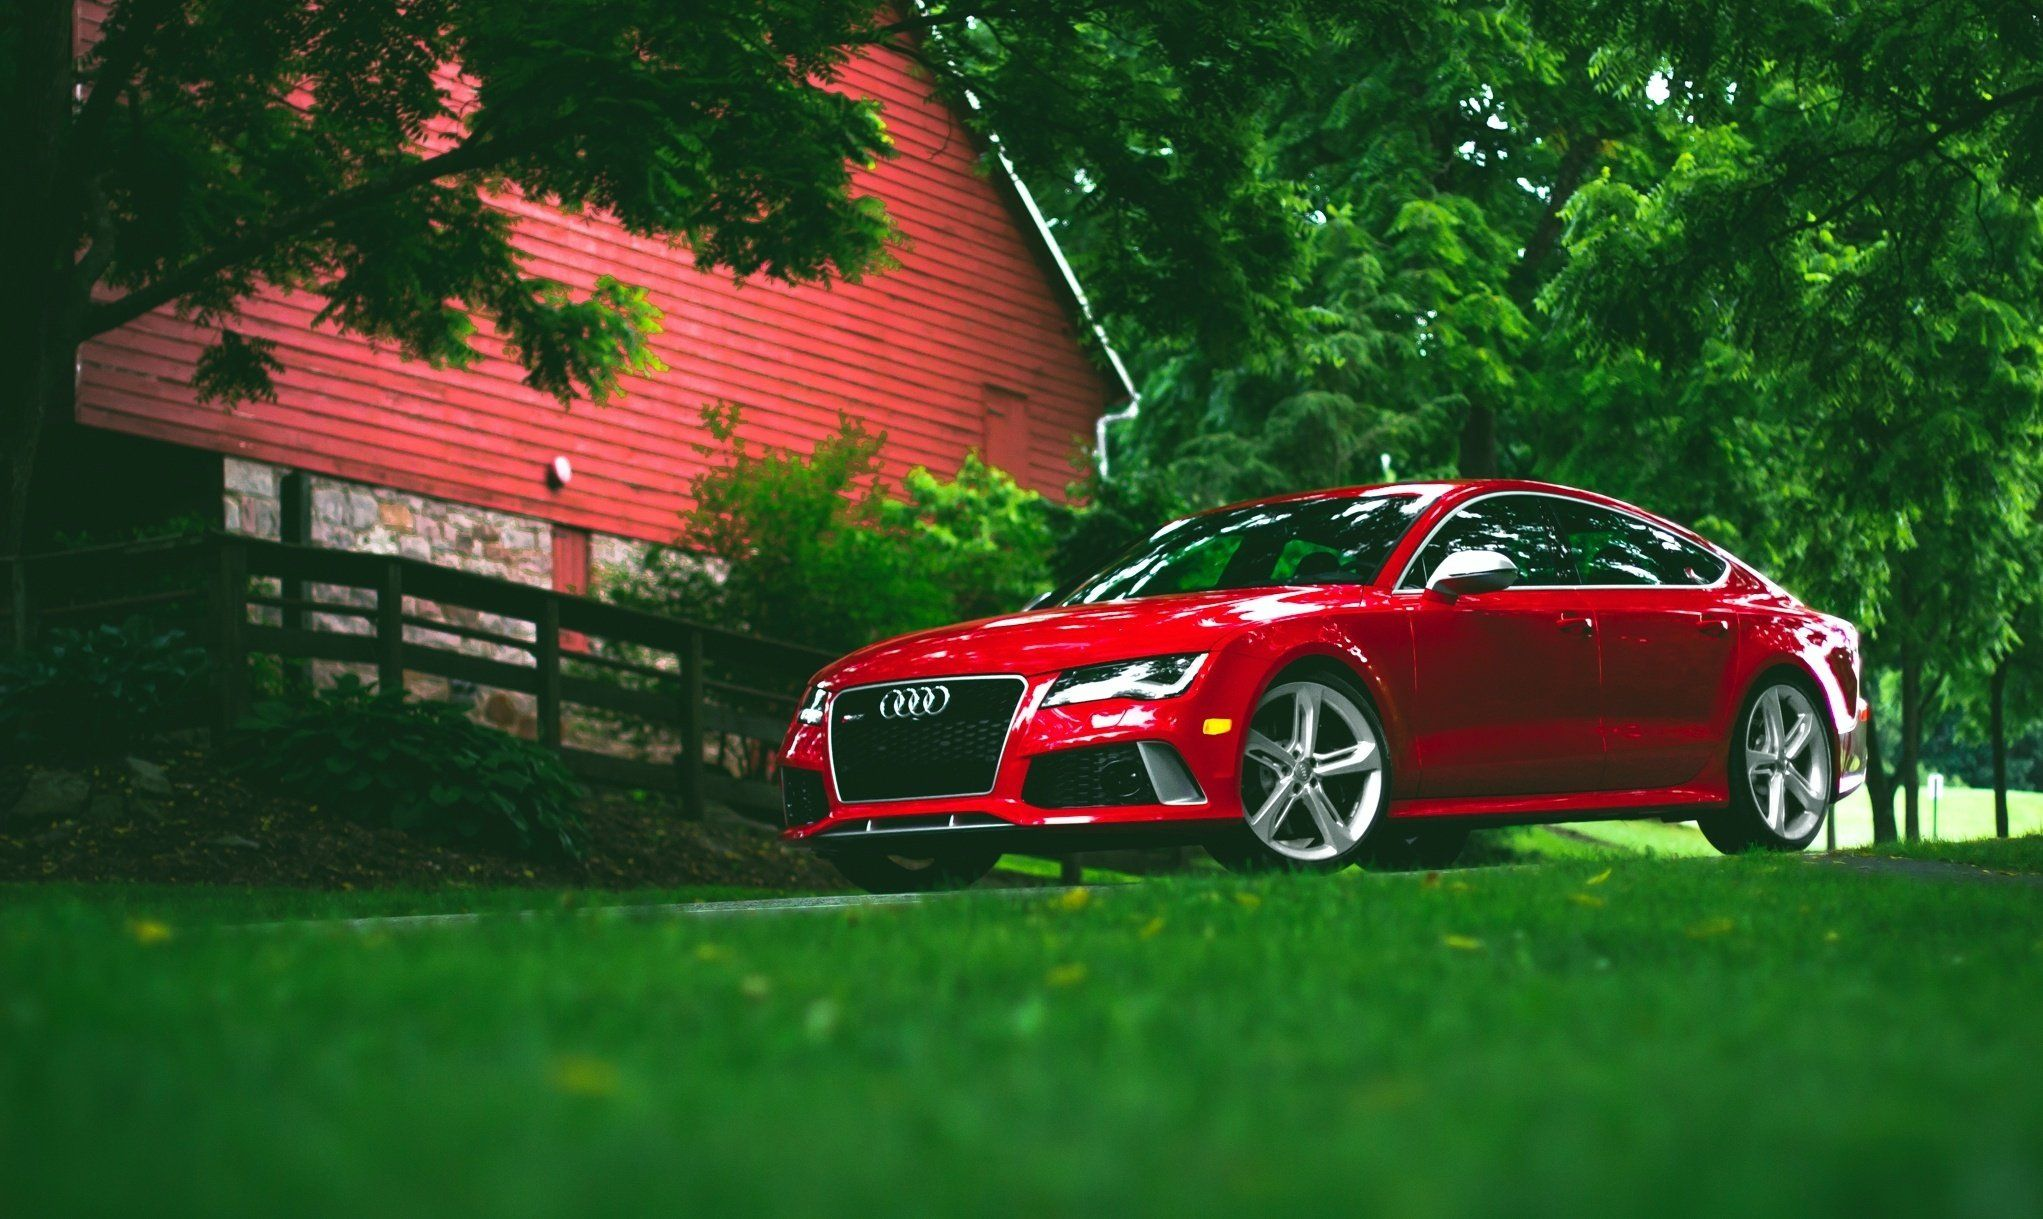 Audi Rs 7 On The Lawn Near The House Red Audi Audi Car Models Audi